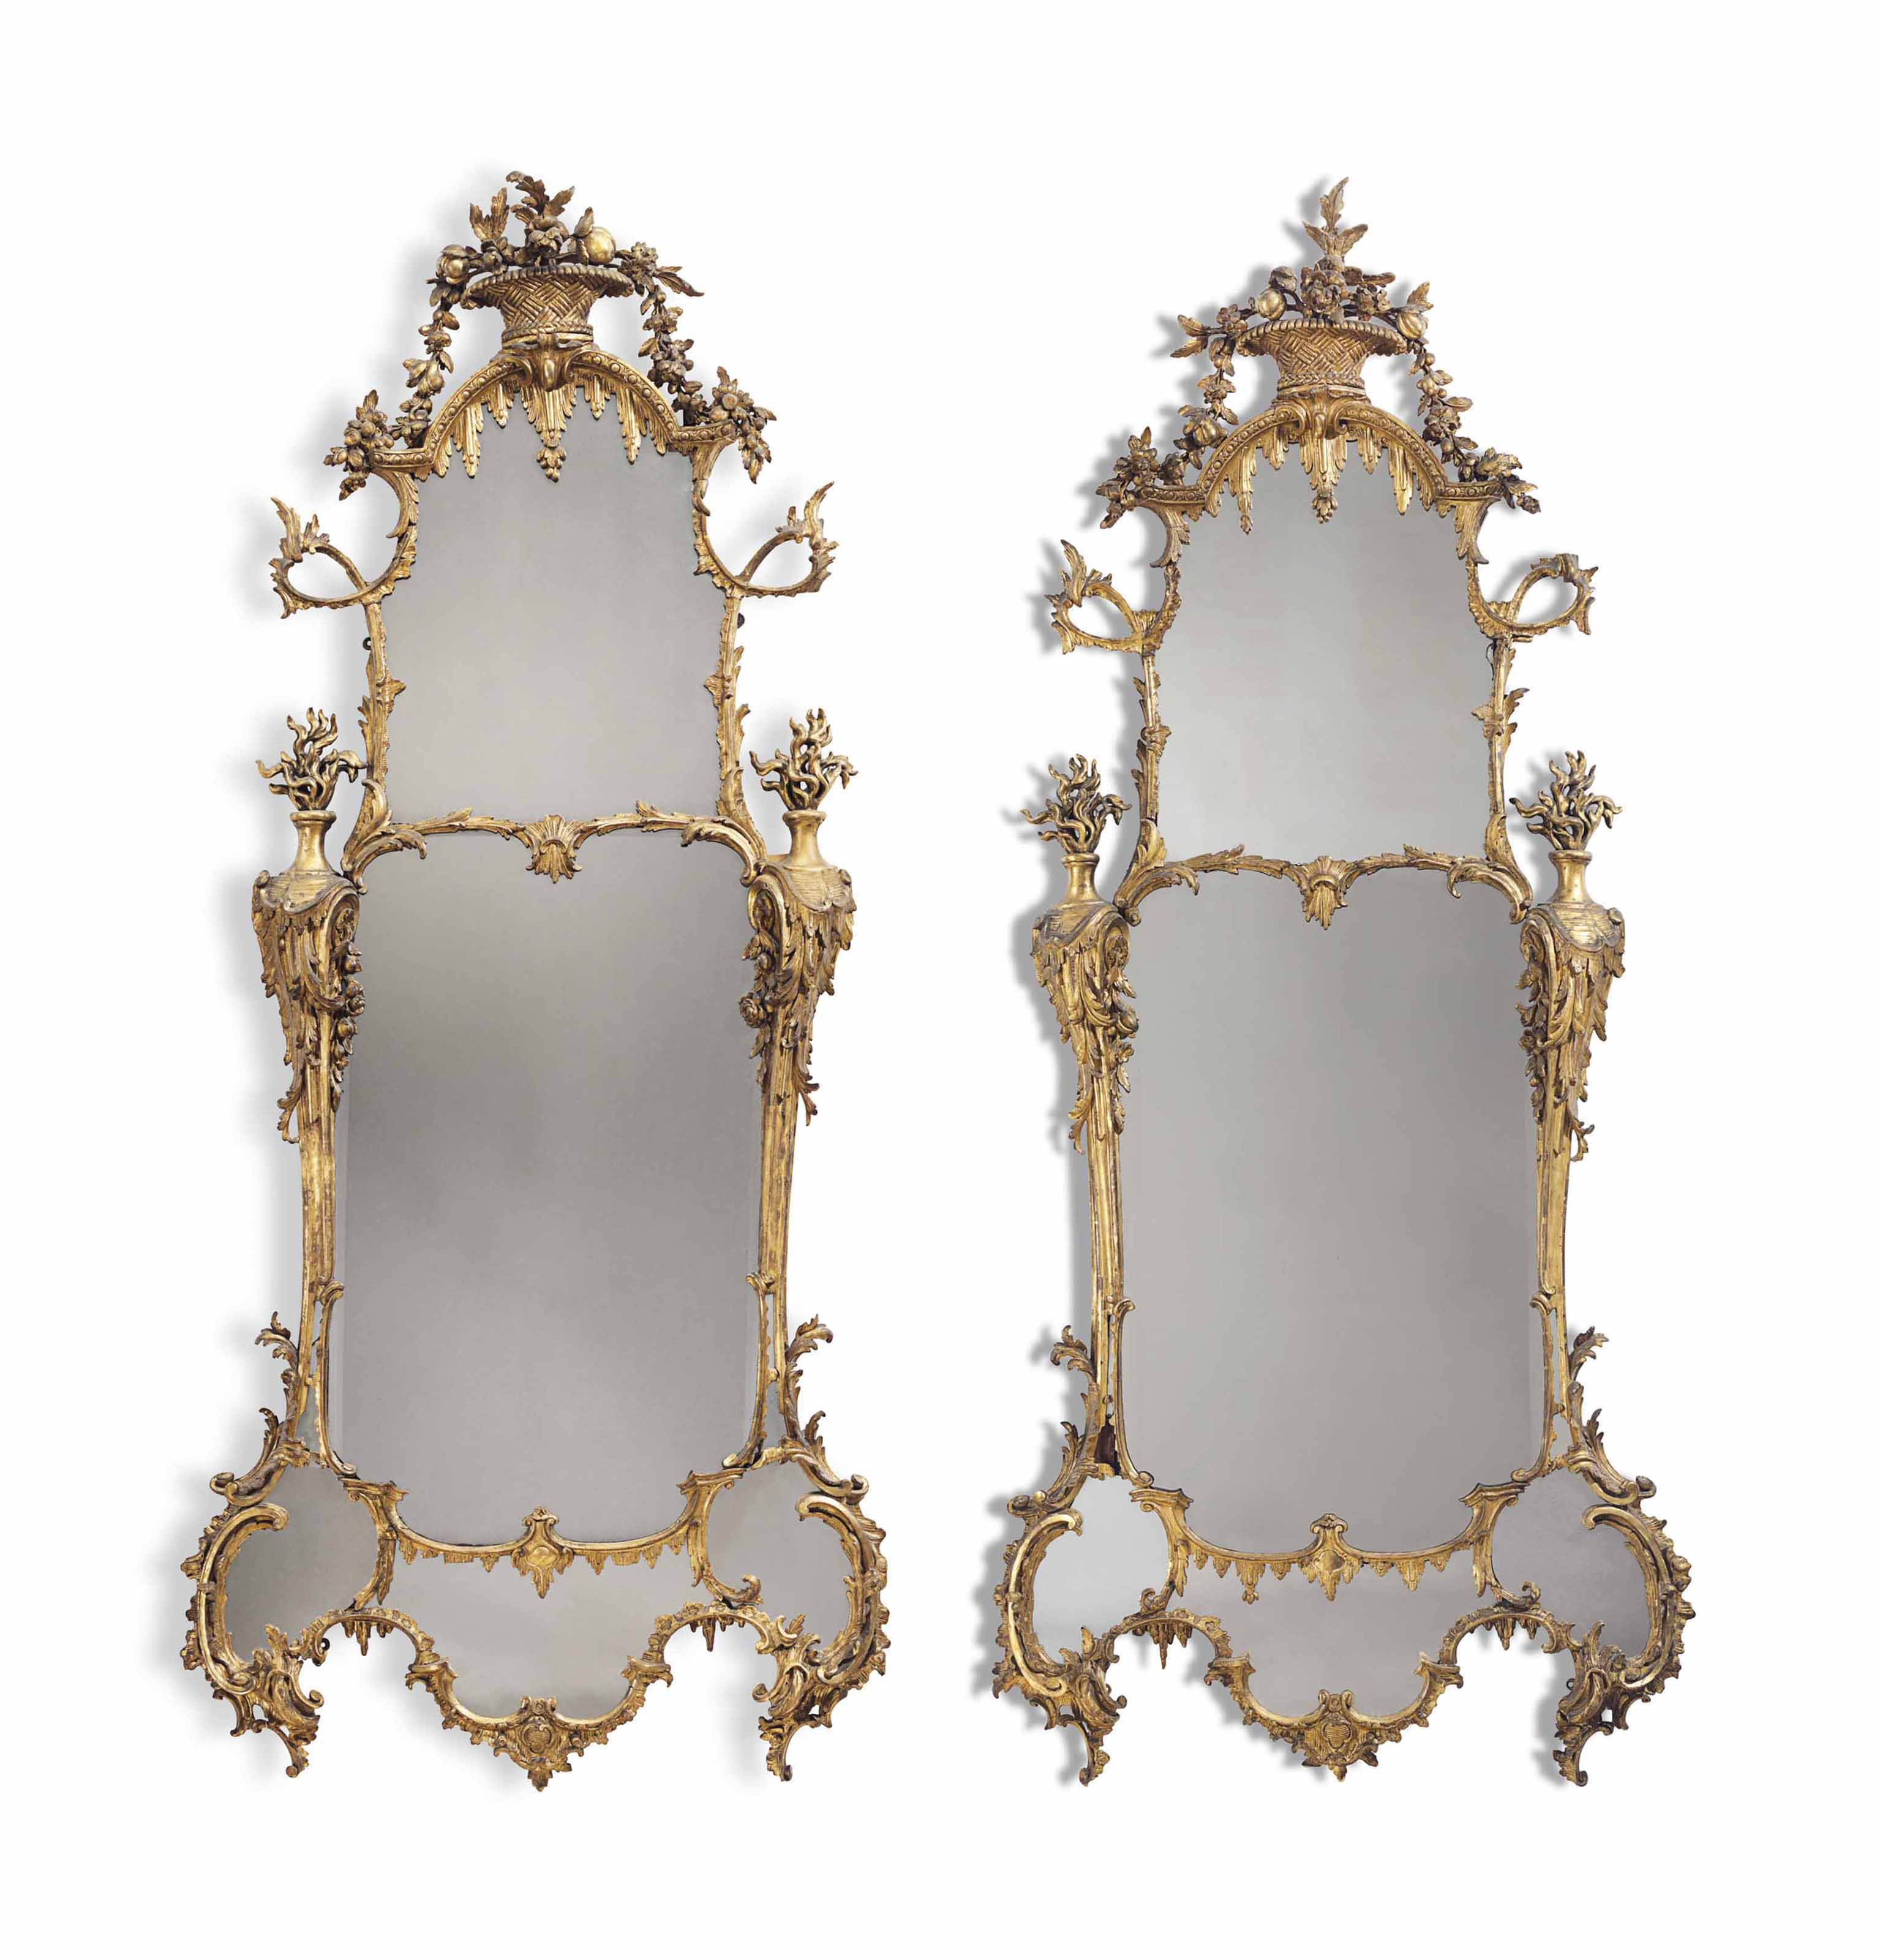 A PAIR OF GEORGE II GILTWOOD PIER MIRRORS